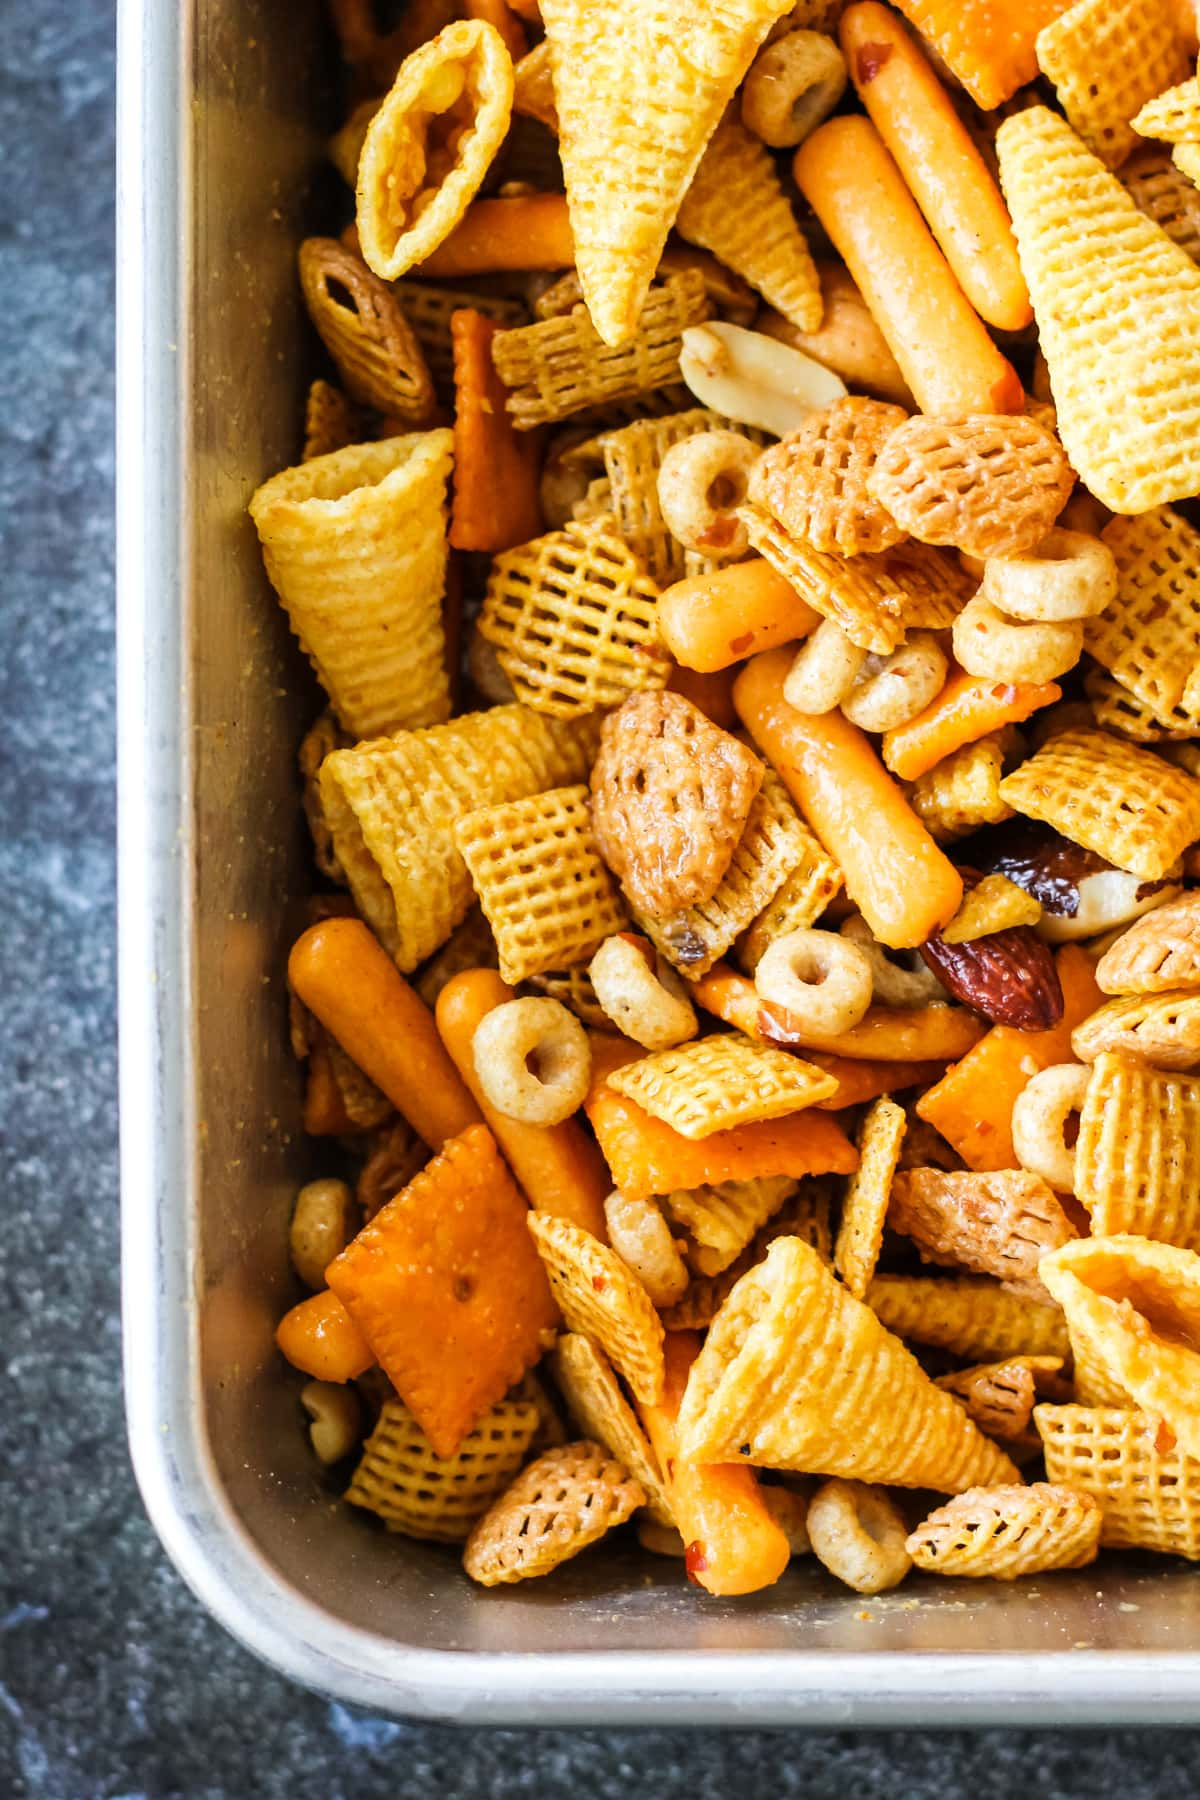 a close up of a tray of Nuts and Bolts with cheerios, bugles, pretzels, nuts and cereal